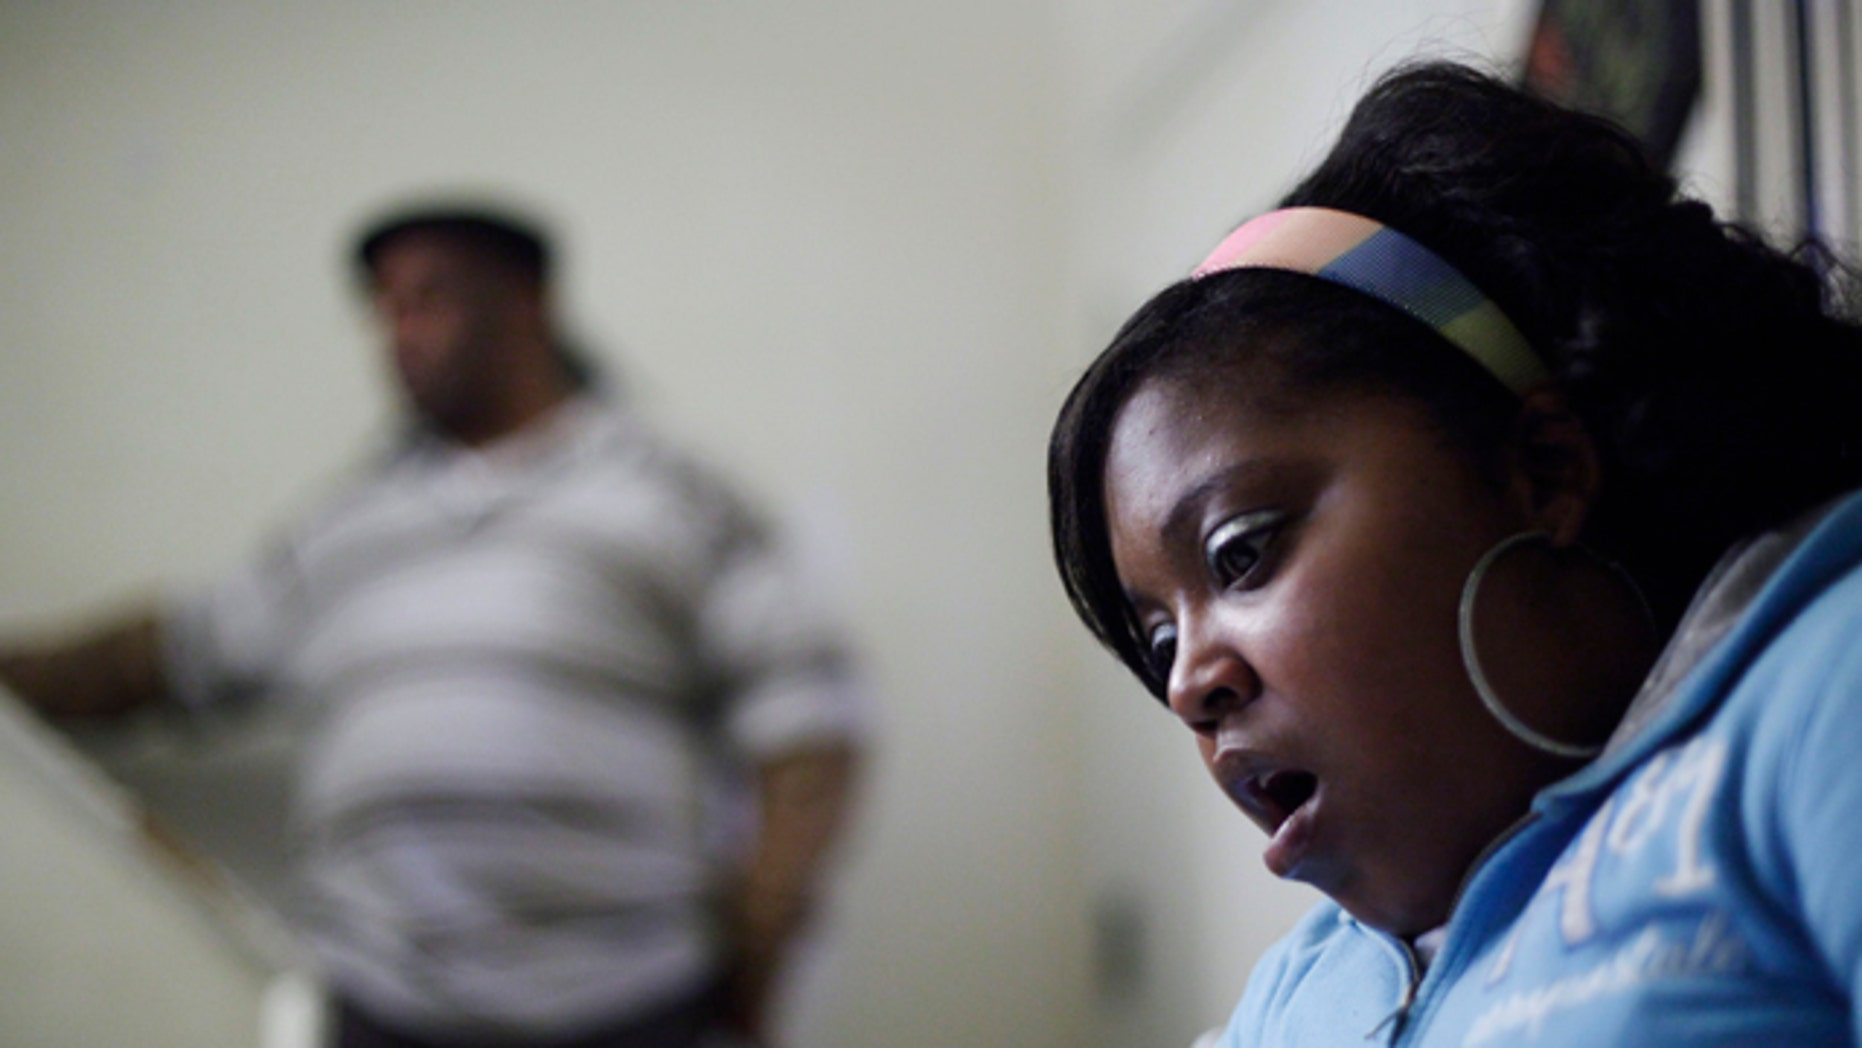 Jan. 21, 2011: Davida Johnson, 30, seen with her husband Bobby Johnson, reacts as she reads a grand jury report brought to her by the Associated Press during an interview in Philadelphia. Johnson believes she contracted a venereal disease while undergoing an abortion in 2001 at Dr. Kermit Gosnell's clinic, and says she has since had four miscarriages.